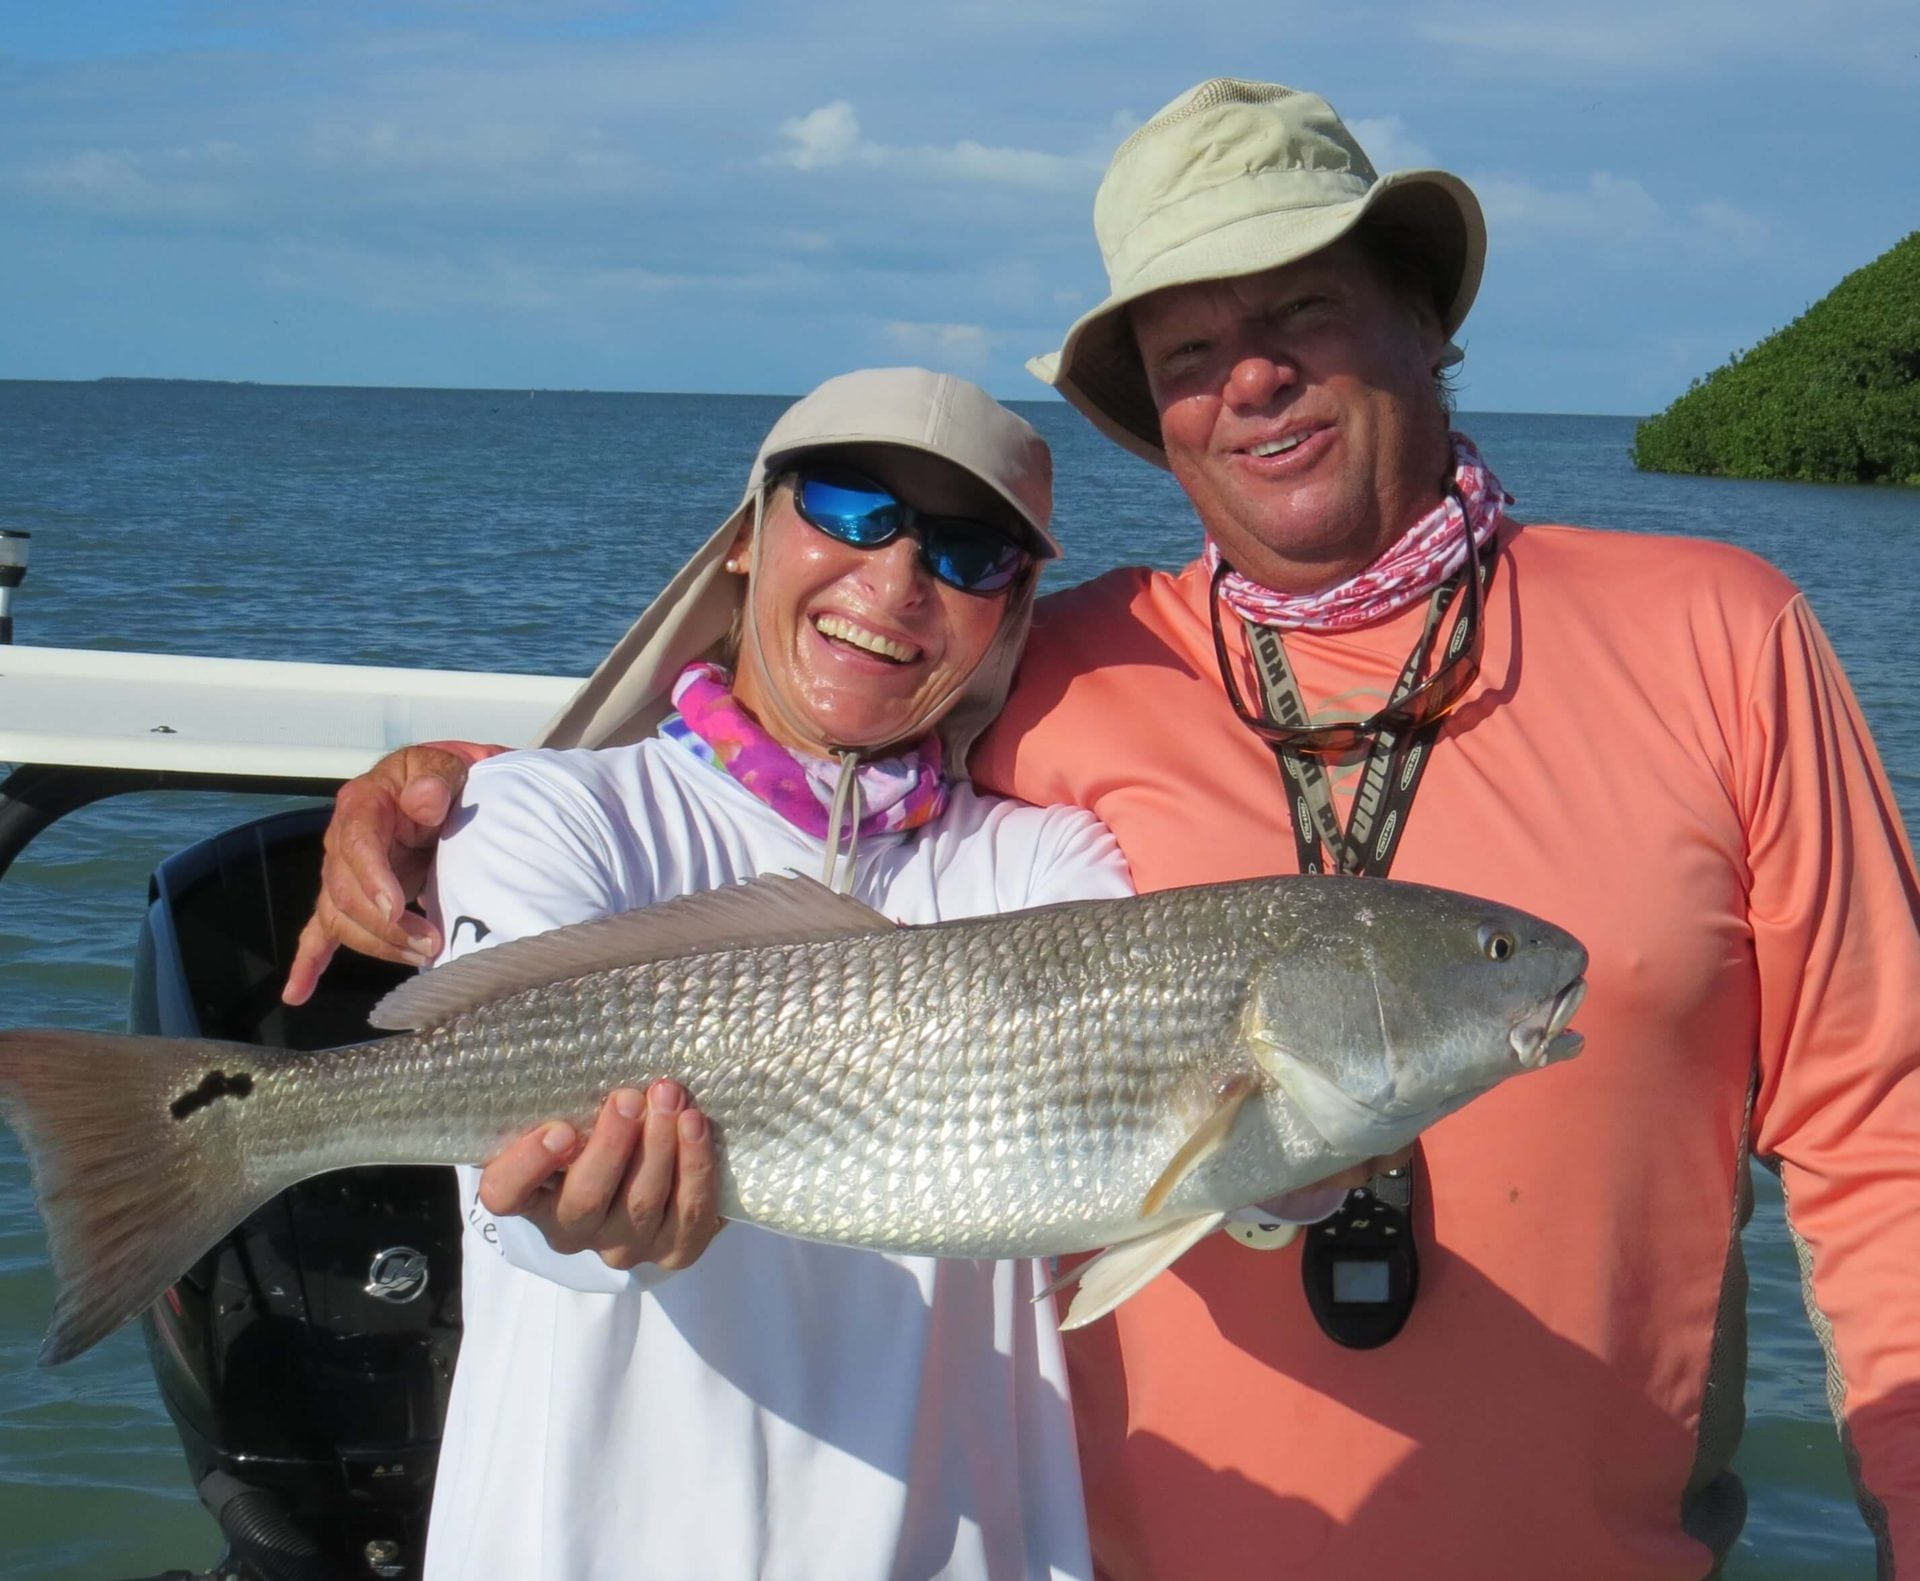 Capt Mike Patterson's Fin-tastic Fishing Charts